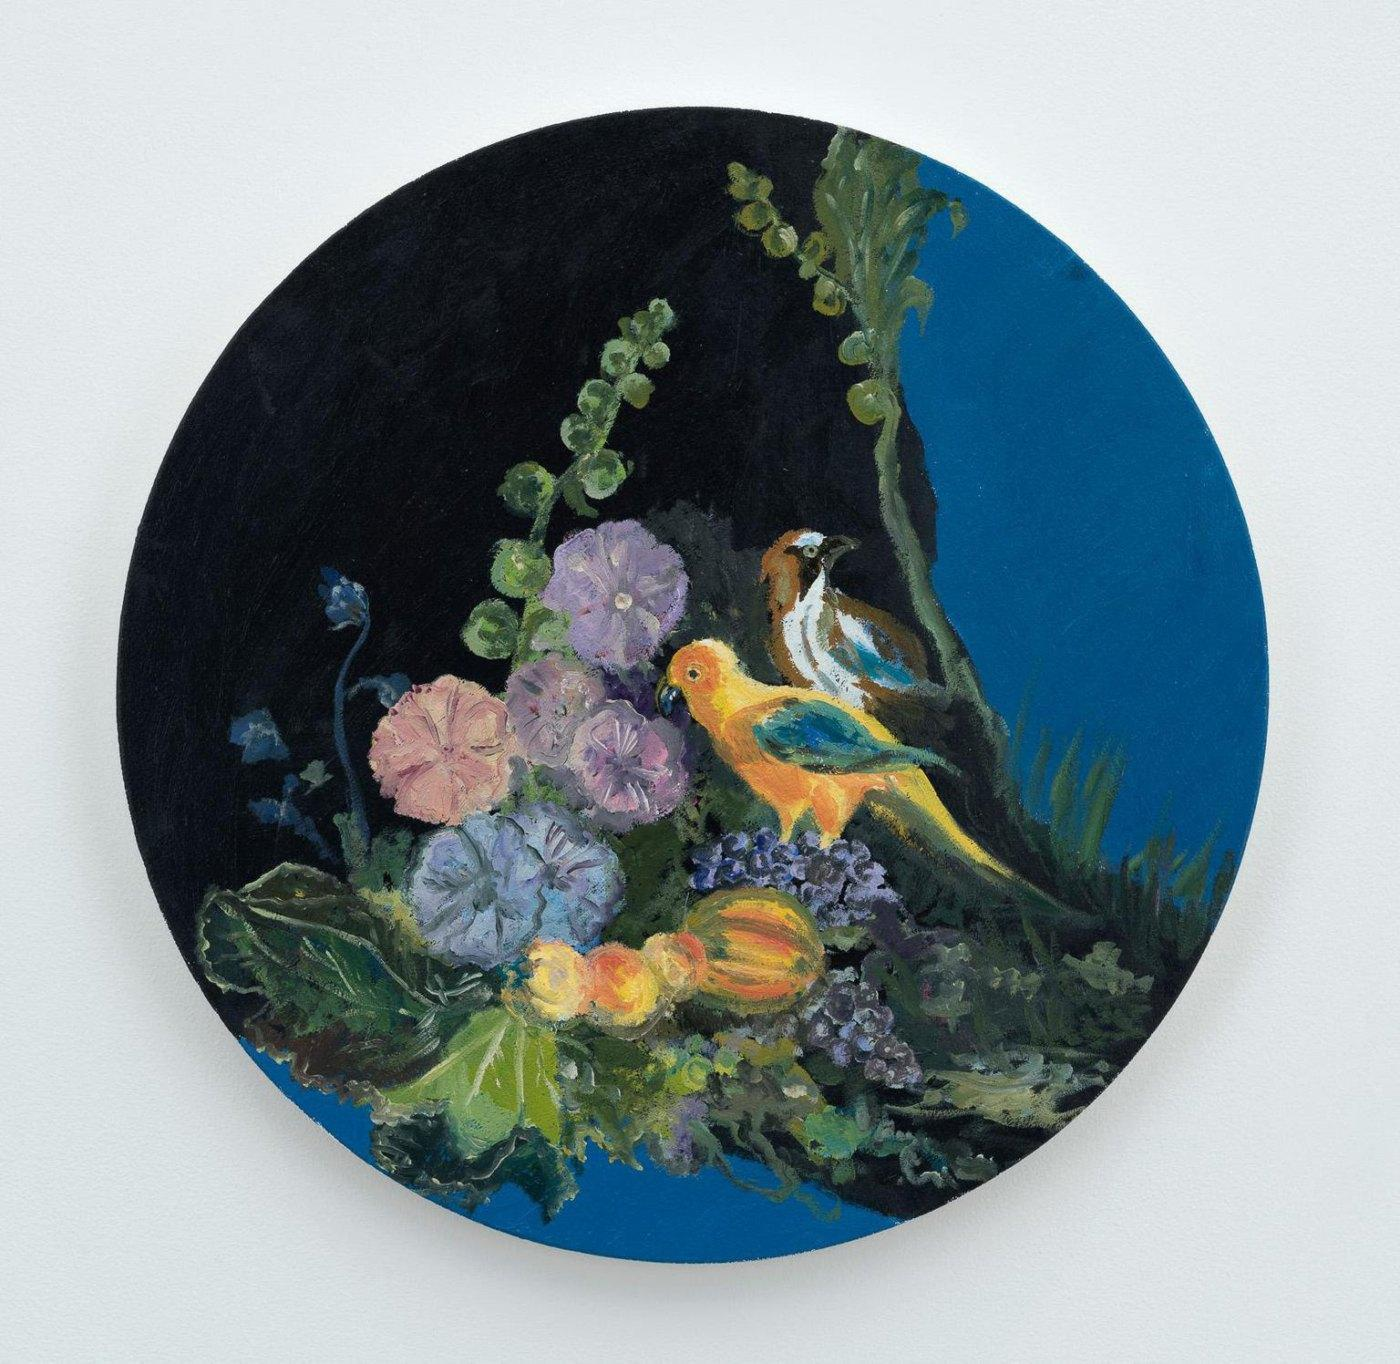 Karen Kilimnik,/guarding the flowers and lunch/, 2017, water soluble oil  color on canvas, 41 cm diameter